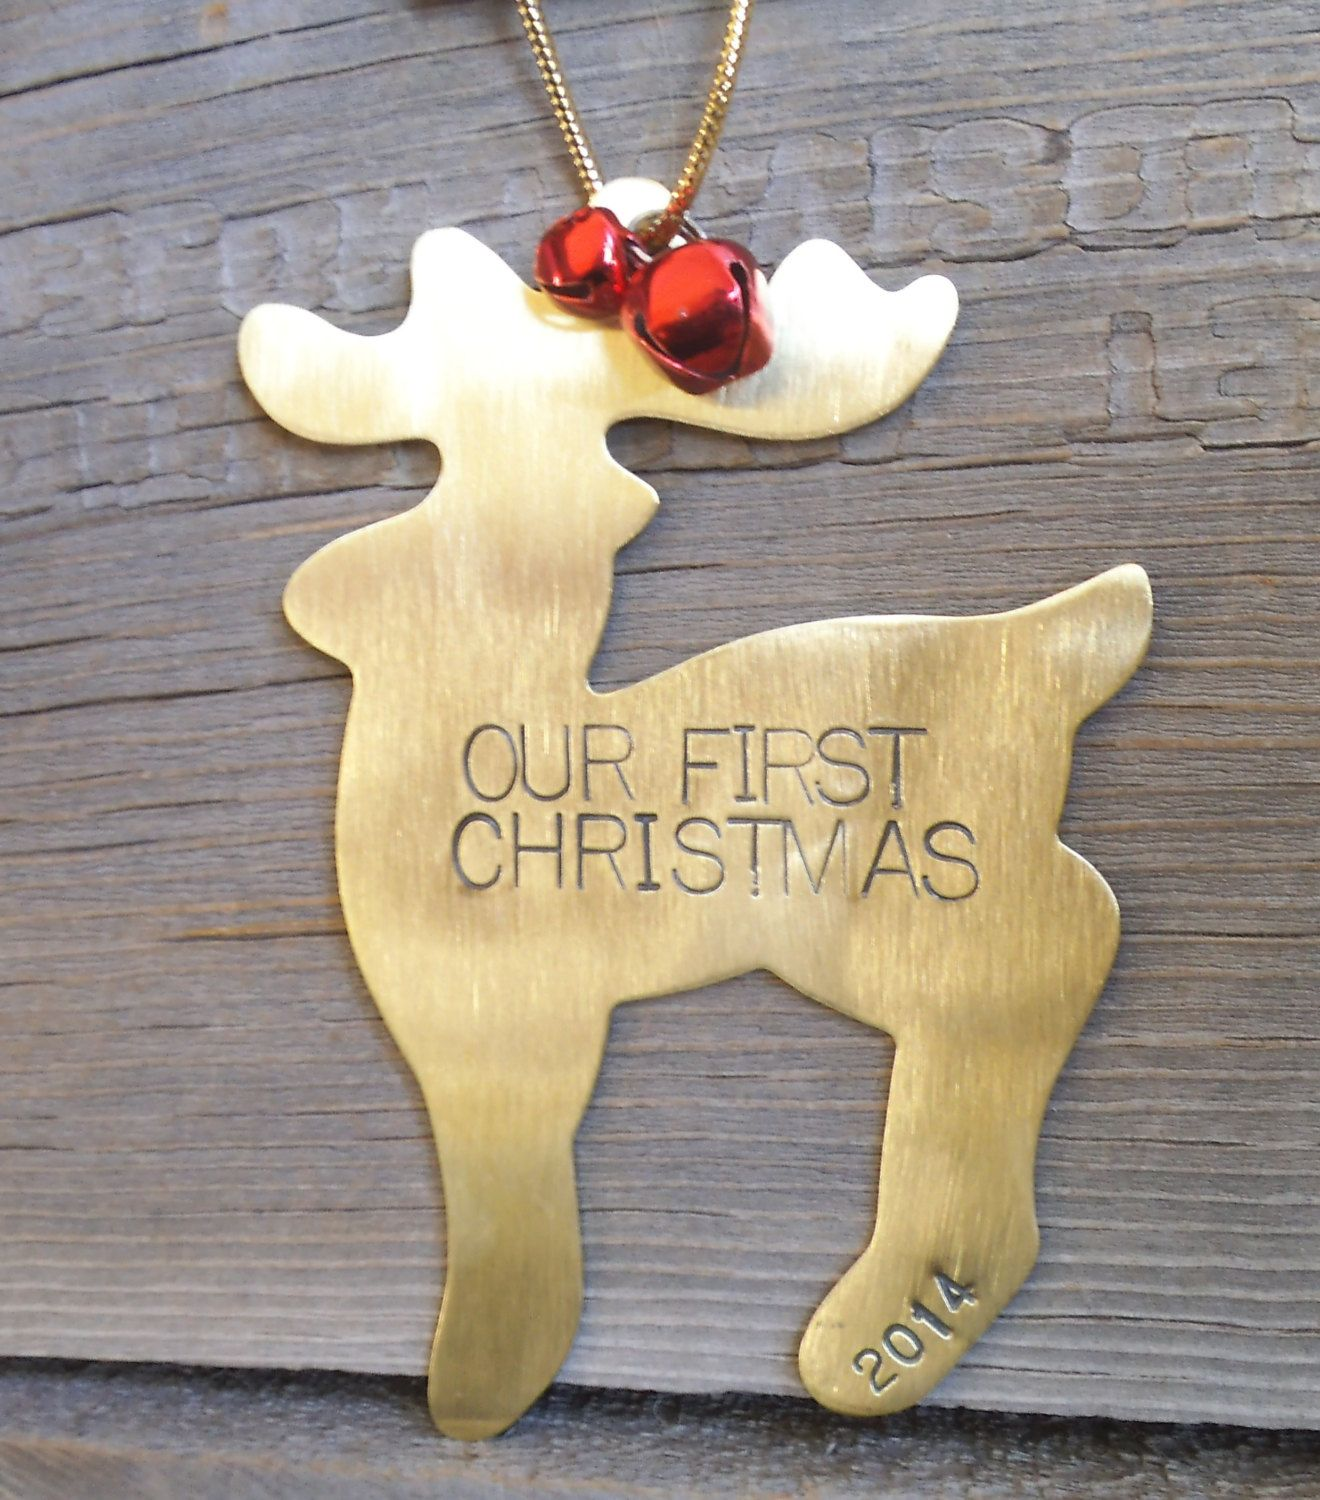 First christmas as mr and mrs decoration - Personalized Our First Christmas Ornament Christmas Mr And Mrs Ornament Handstamp First Year Husband Wife Newlywed Reindeer Decoration By Candtcustomlures